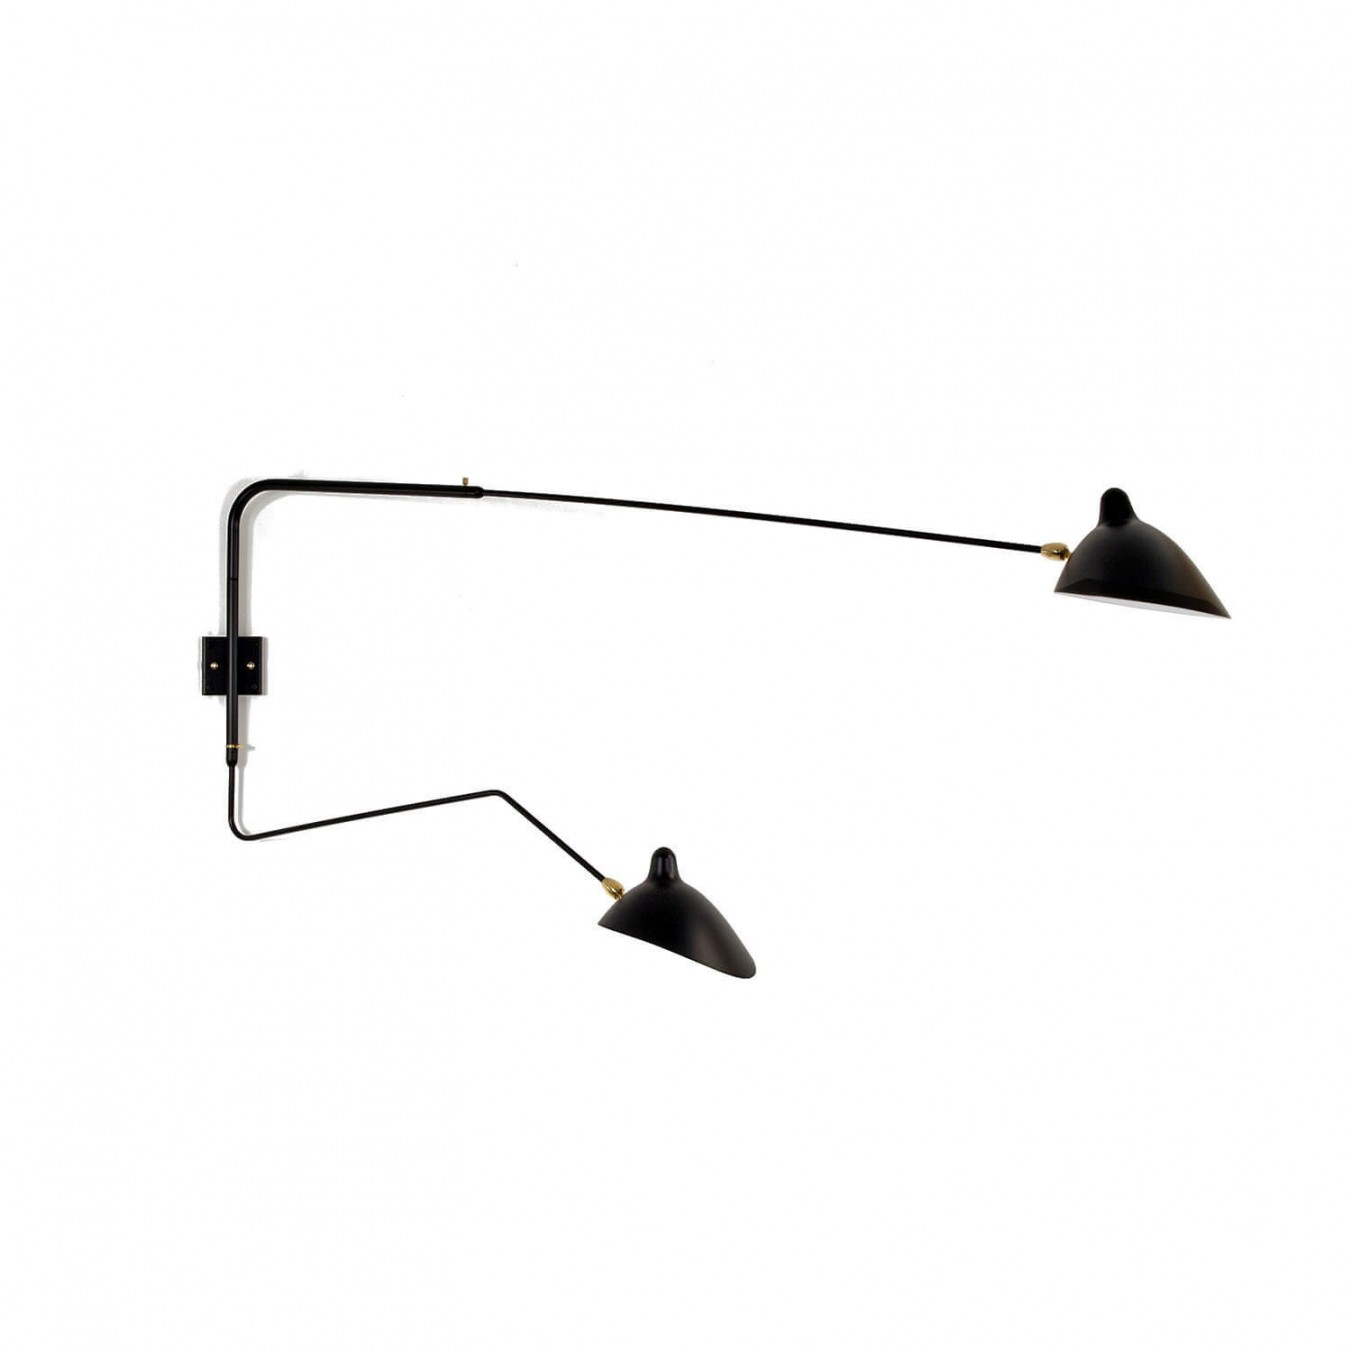 Wall Light with 2 pivoting arms, including 1 curved